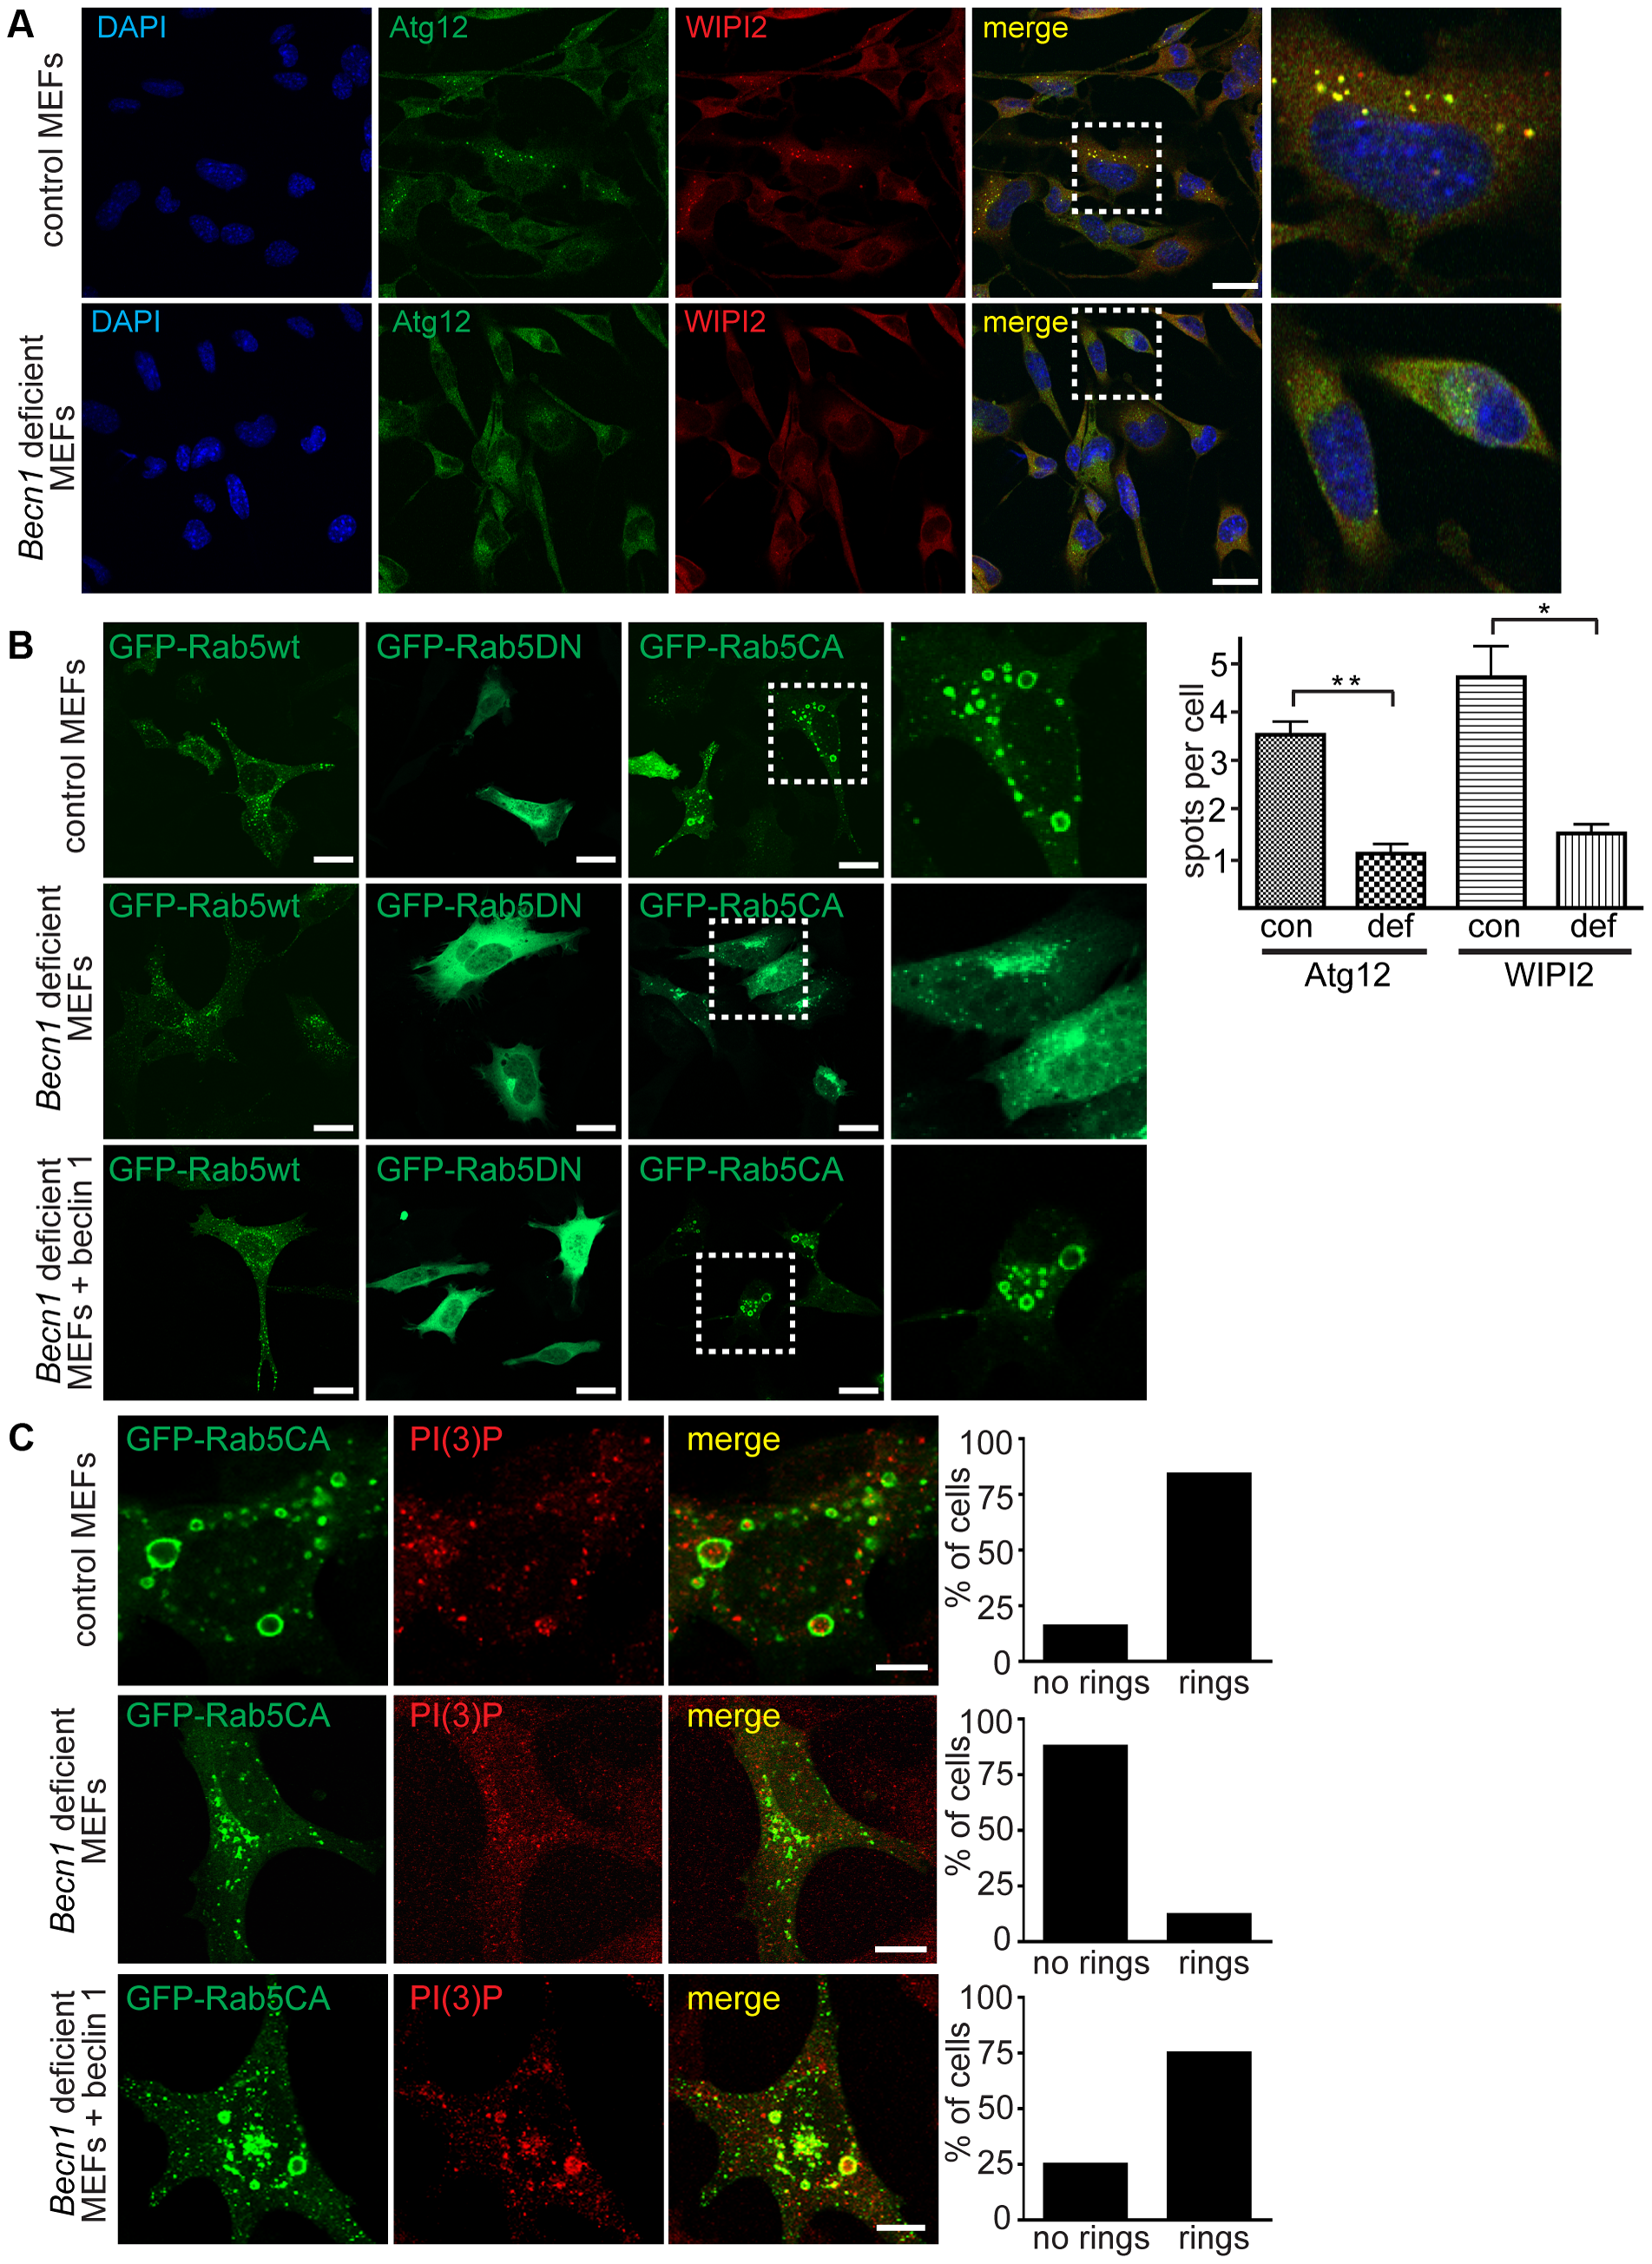 Autophagosome formation and endosomal expansion caused by constitutively active Rab5 and endocytosis are disrupted in <i>Becn1</i> deficient MEFs.